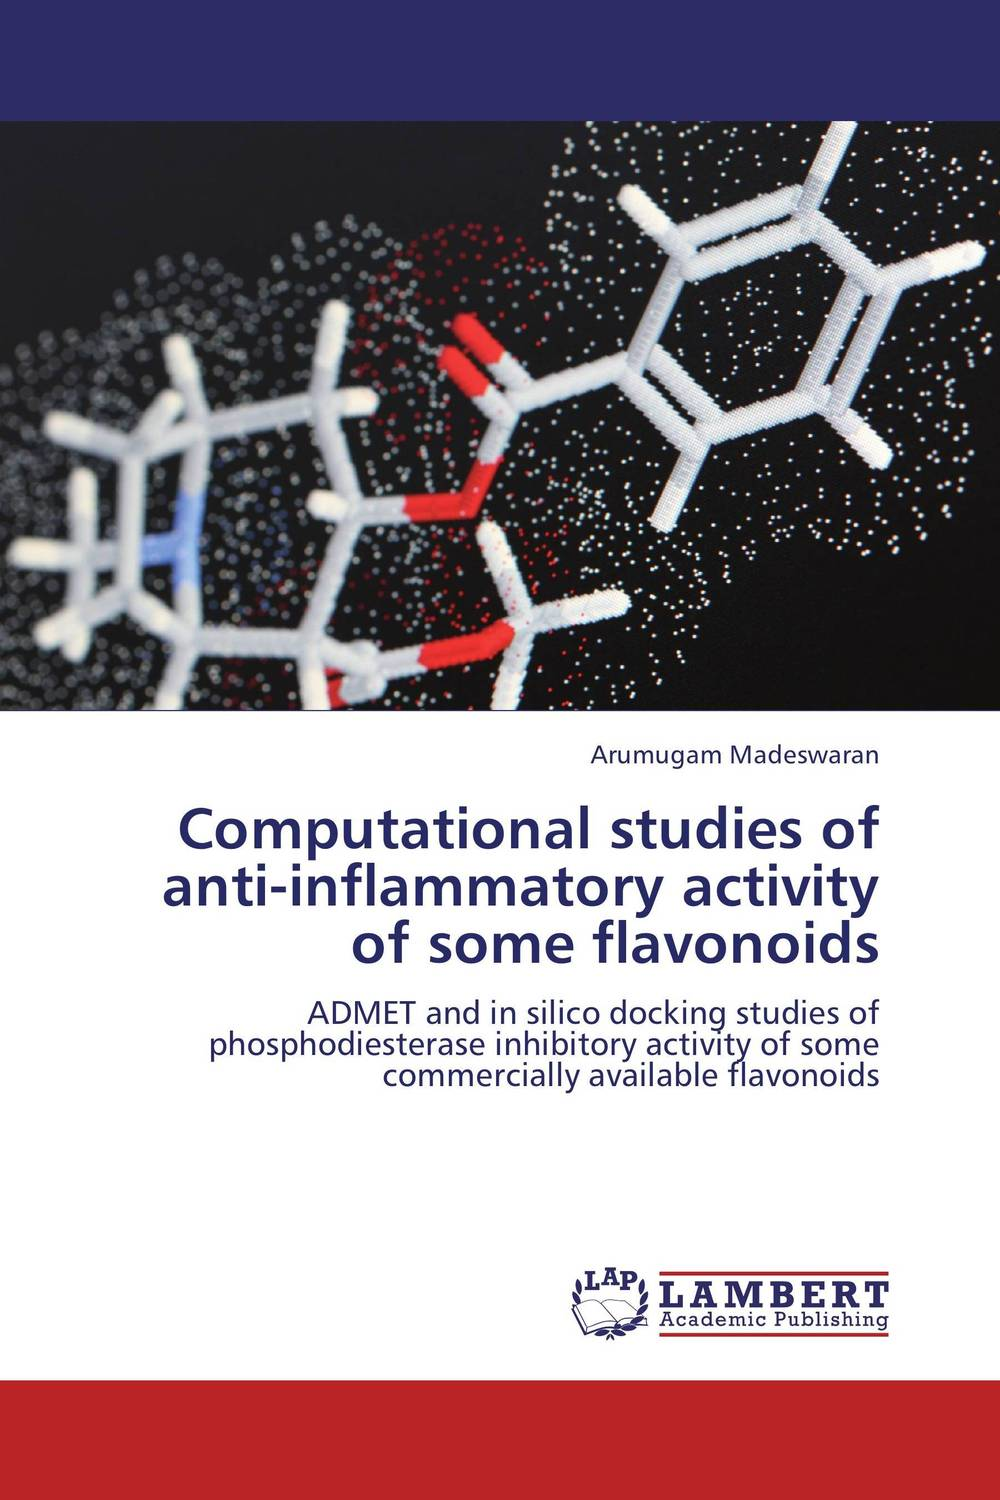 Computational studies of anti-inflammatory activity of some flavonoids nitin chitranshi molecular modeling docking and 3d qsar studies of mtb tnmo enzyme